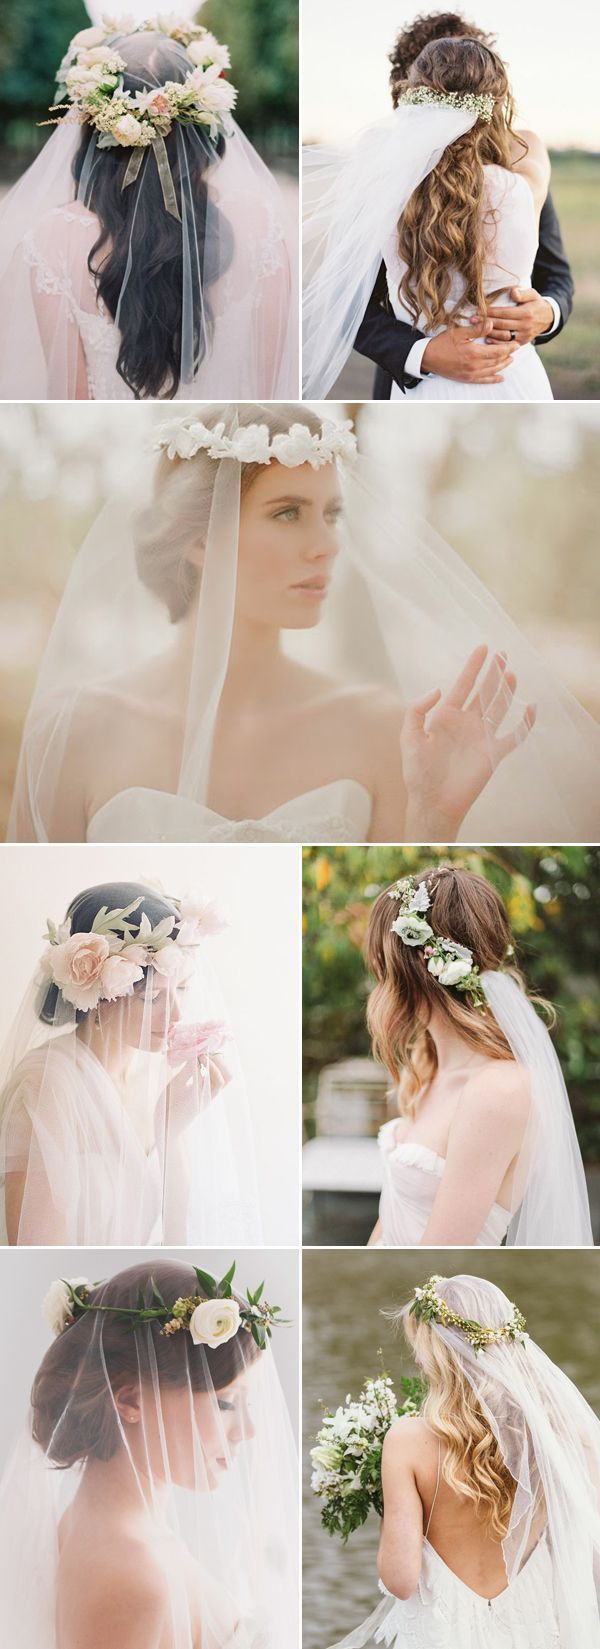 Chic bridal hairstyles that look good with veils bridal hairstyle 26 bridal hairstyles that look good with veils flower crown thebeautyspotqld izmirmasajfo